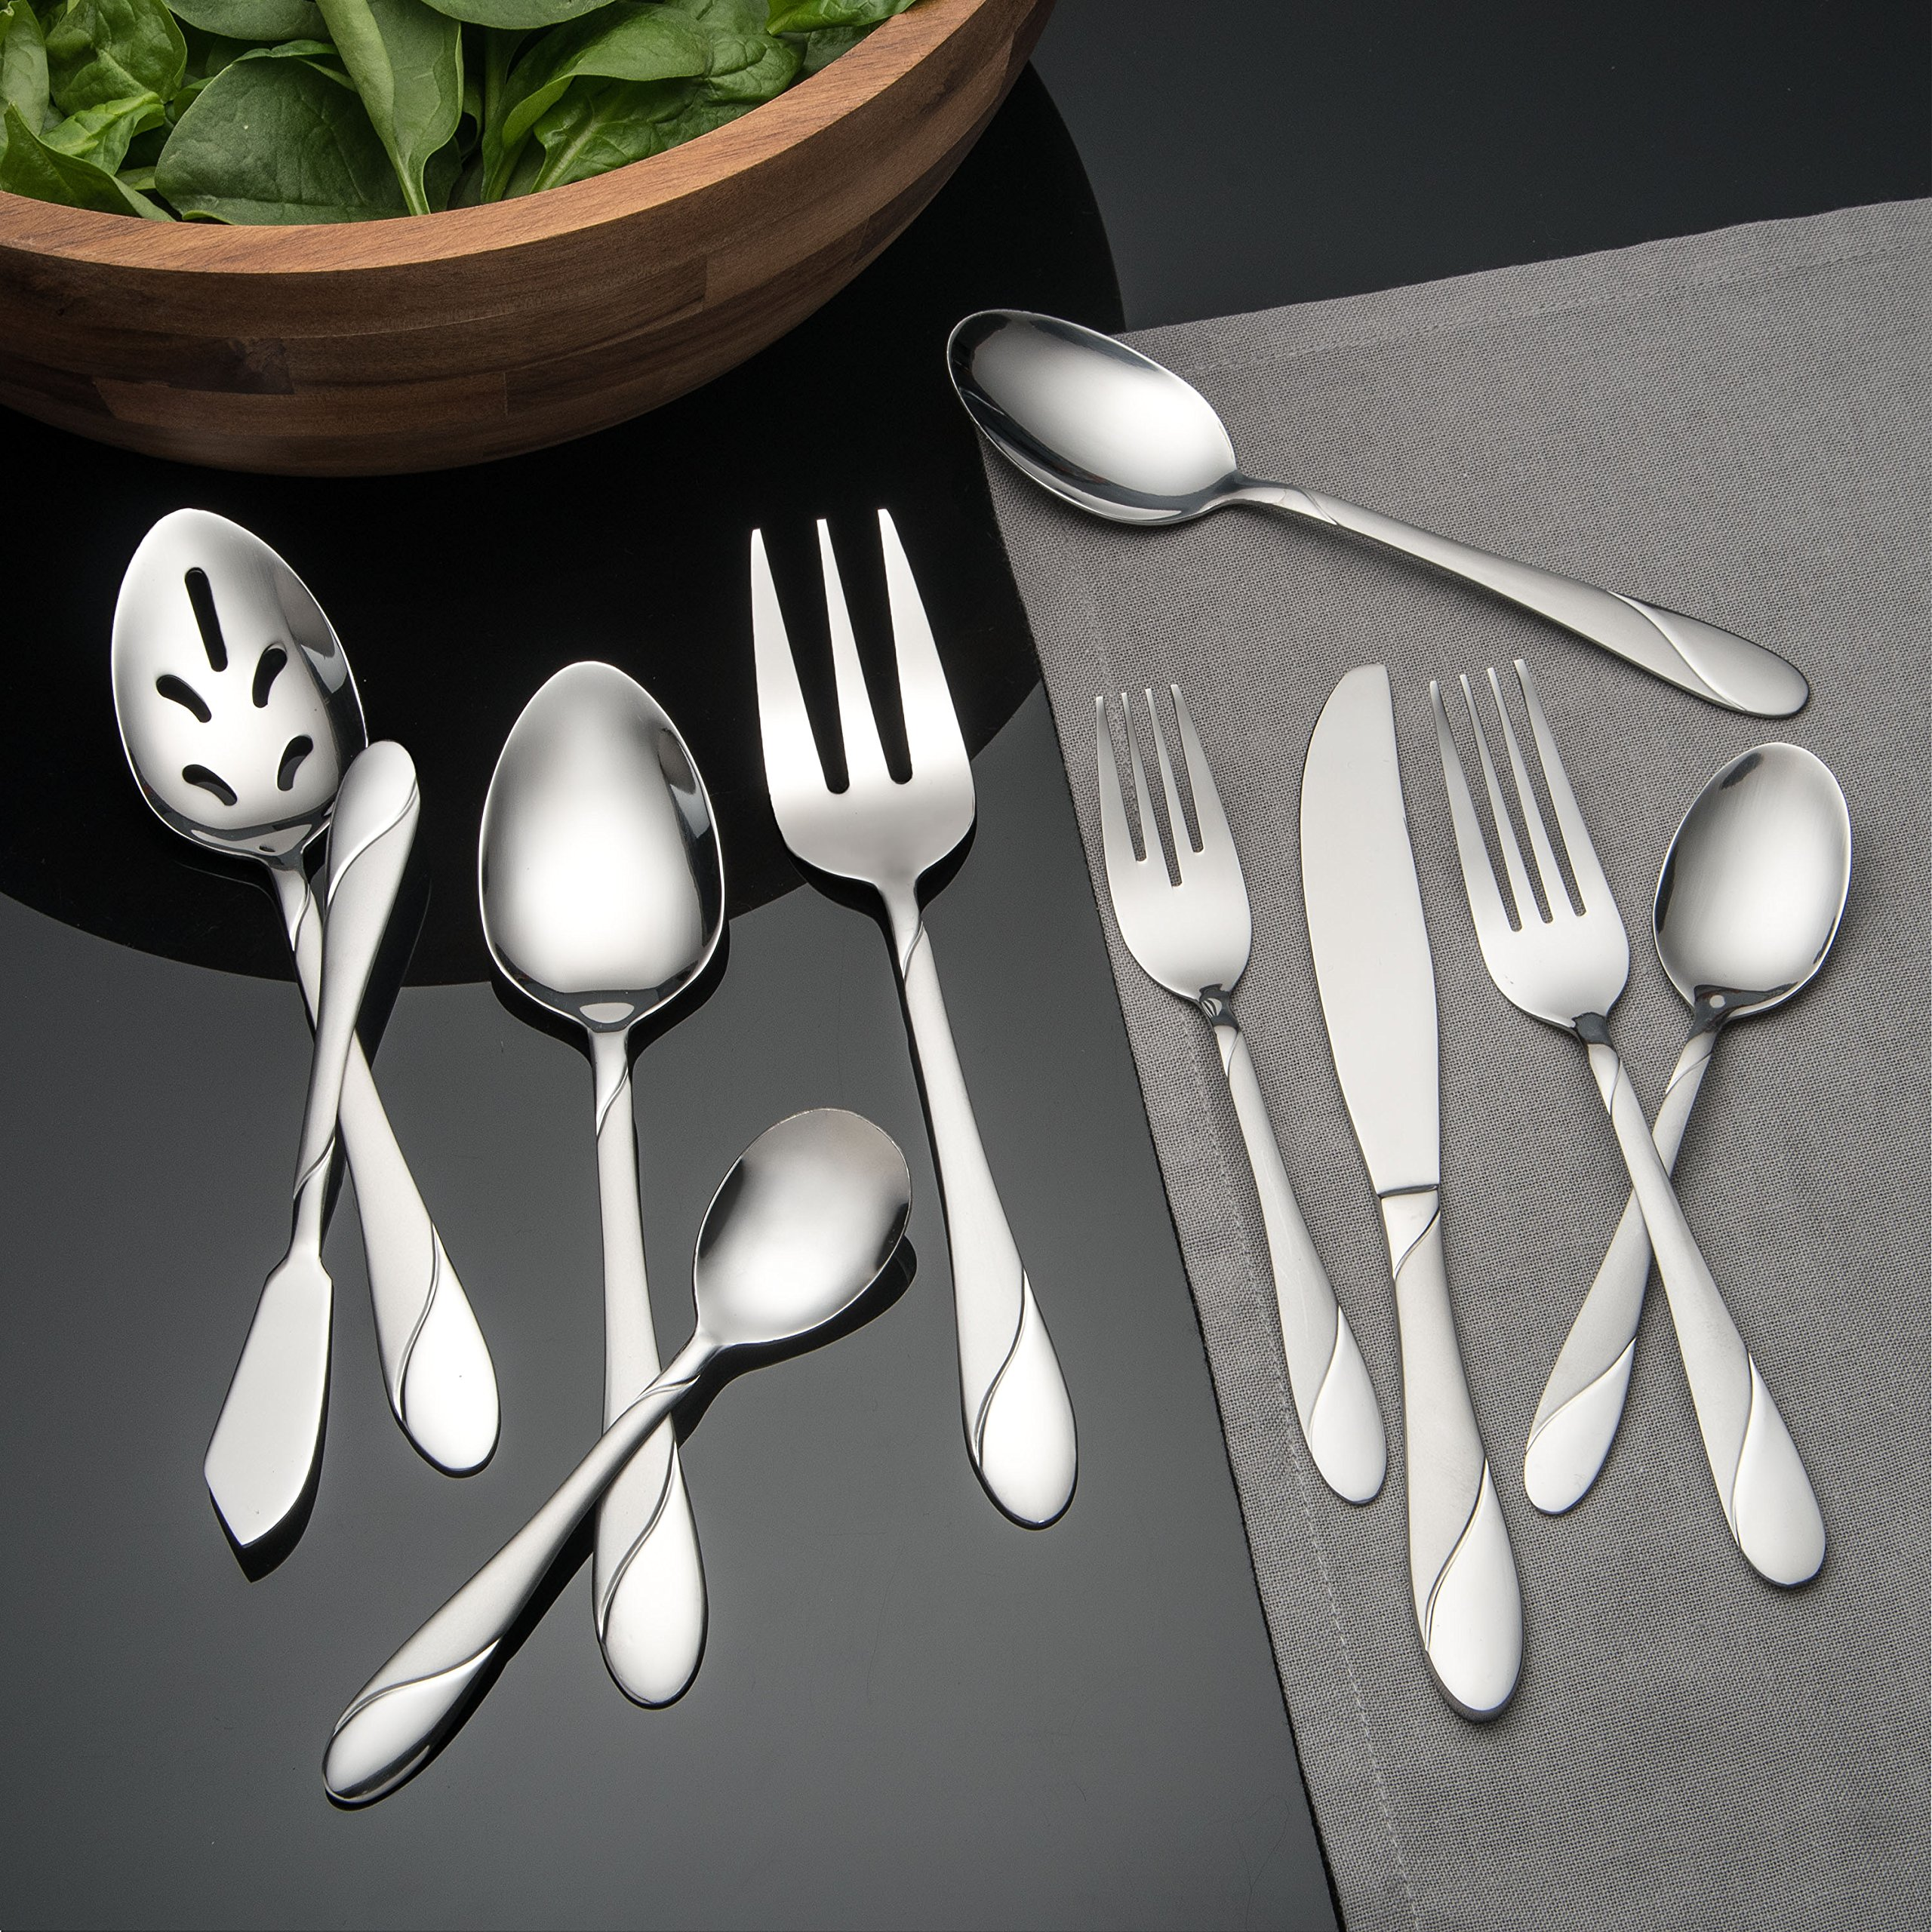 Cambridge Silversmiths Swirl Sand 89-Piece Flatware Set